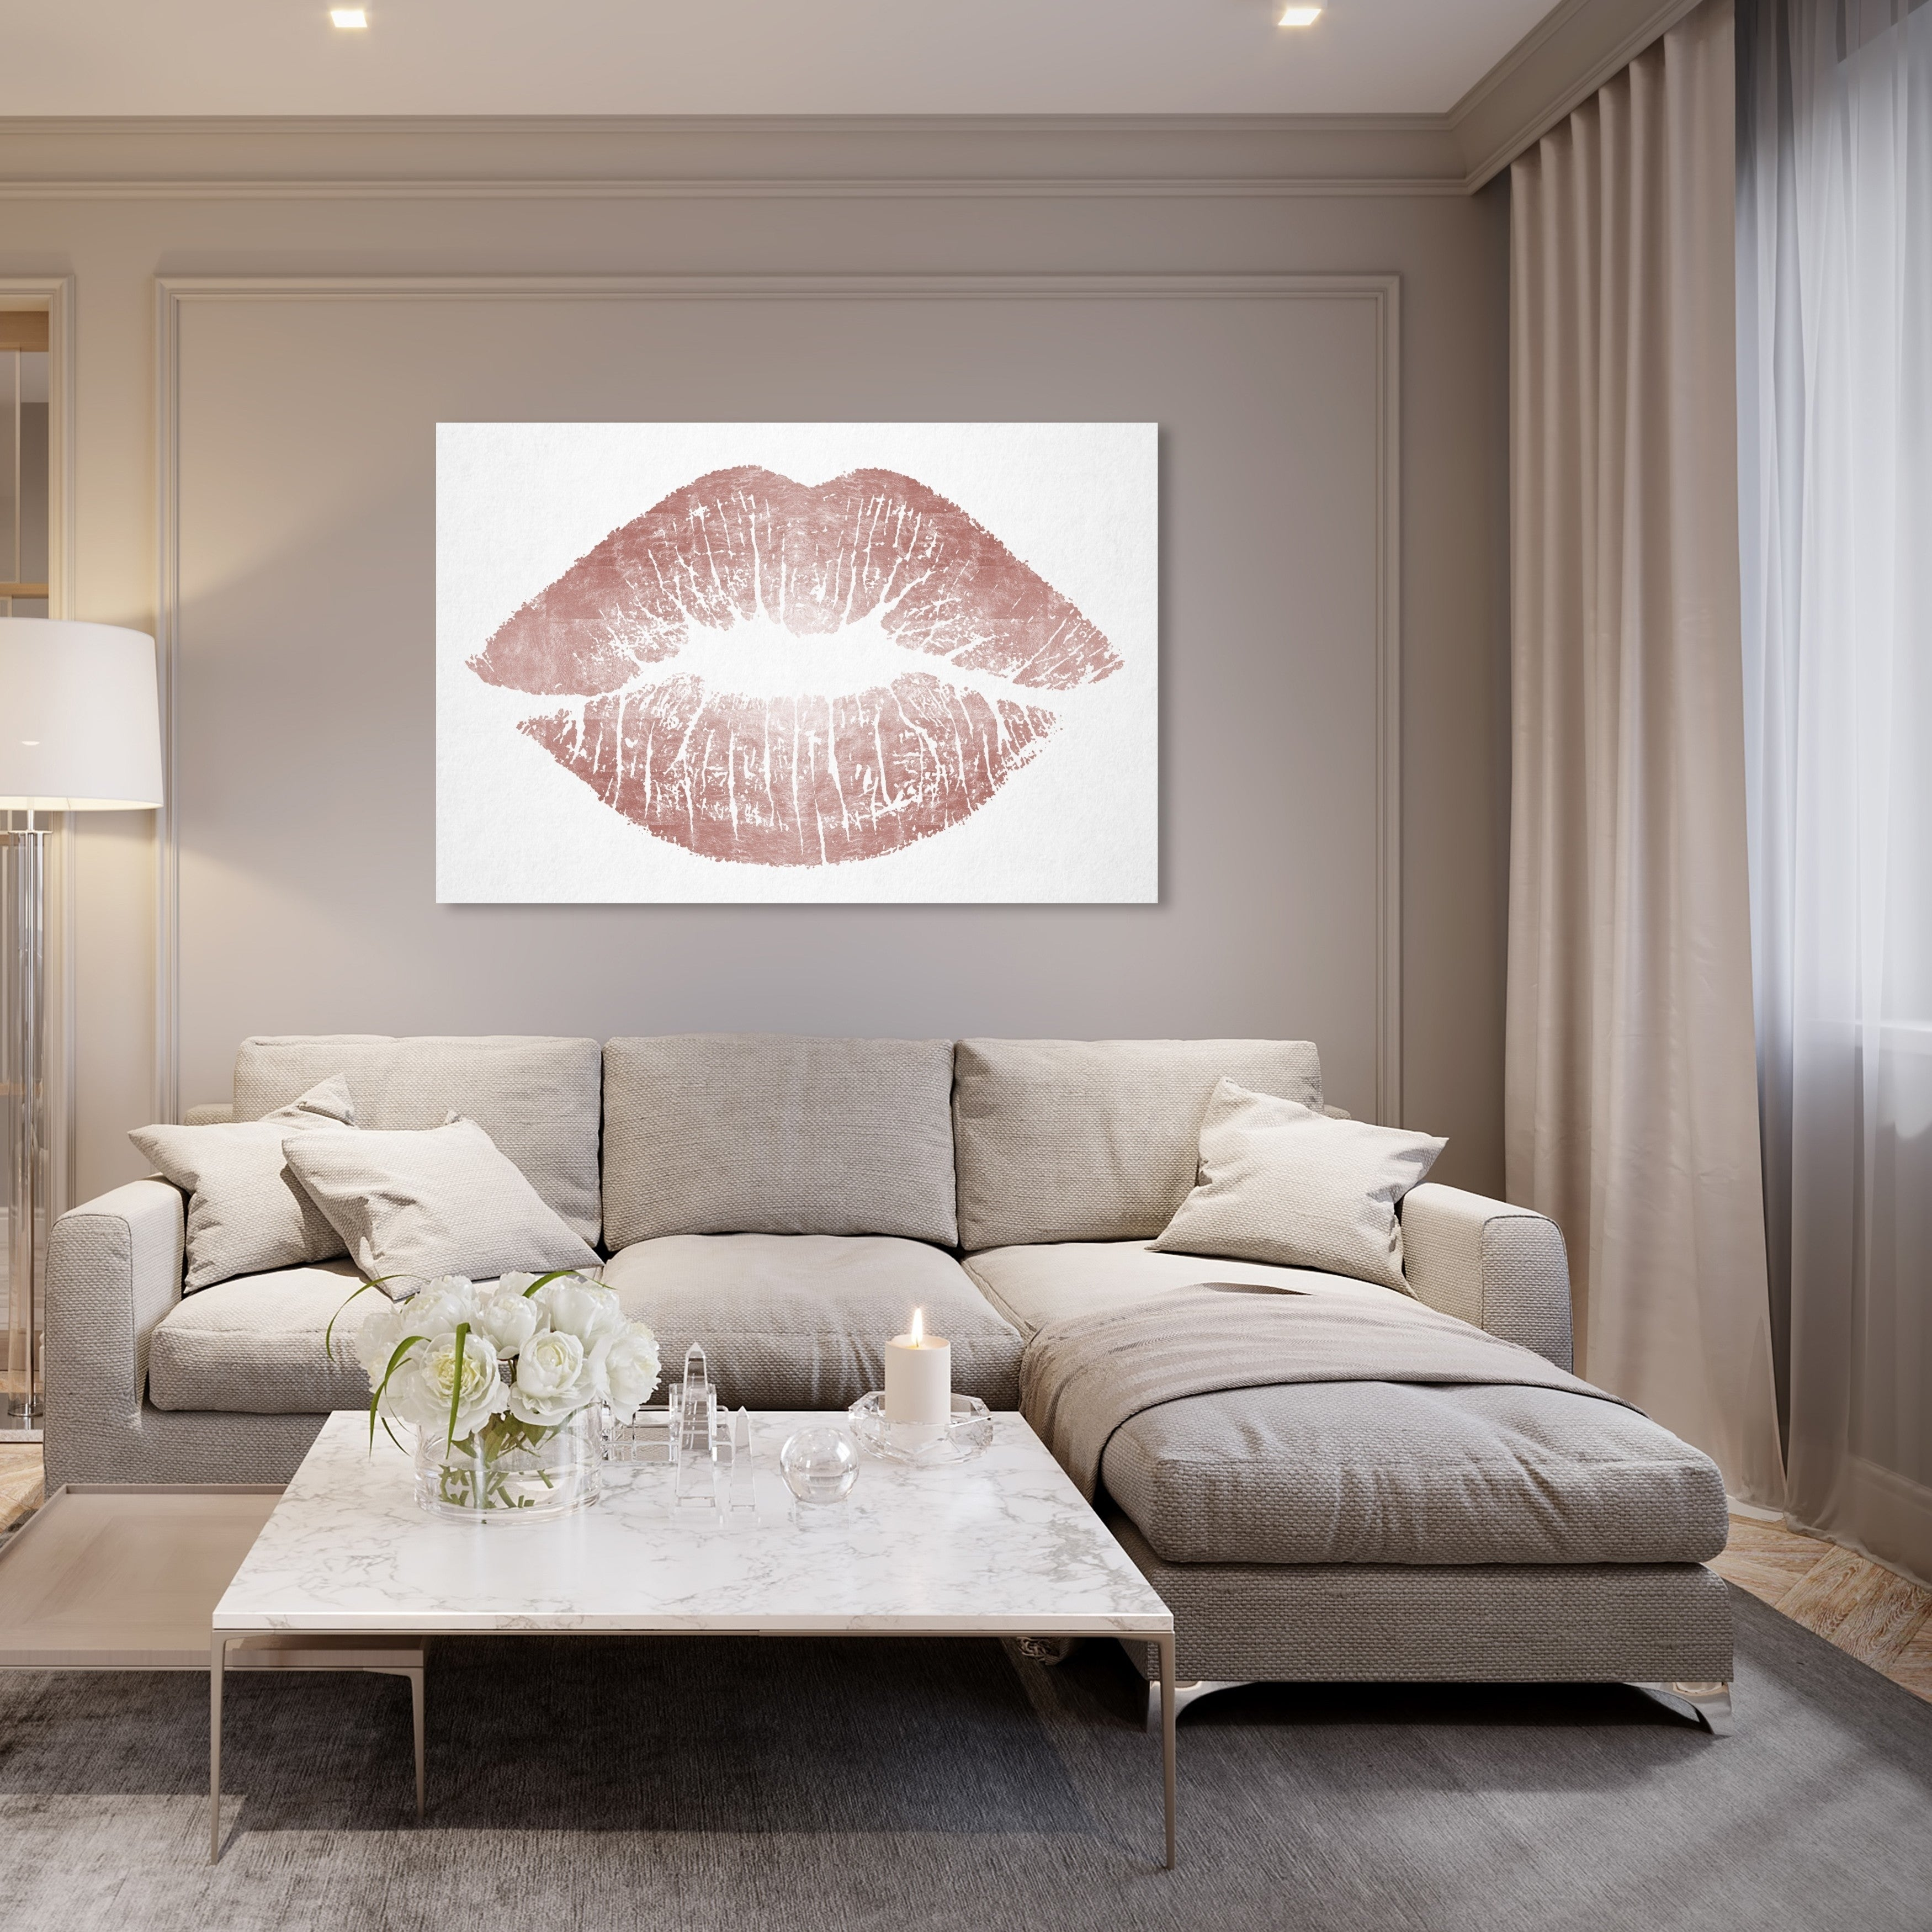 Oliver Gal Rose Gold Solid Kiss Fashion And Glam Wall Art Canvas Print Pink White On Sale Overstock 28370005